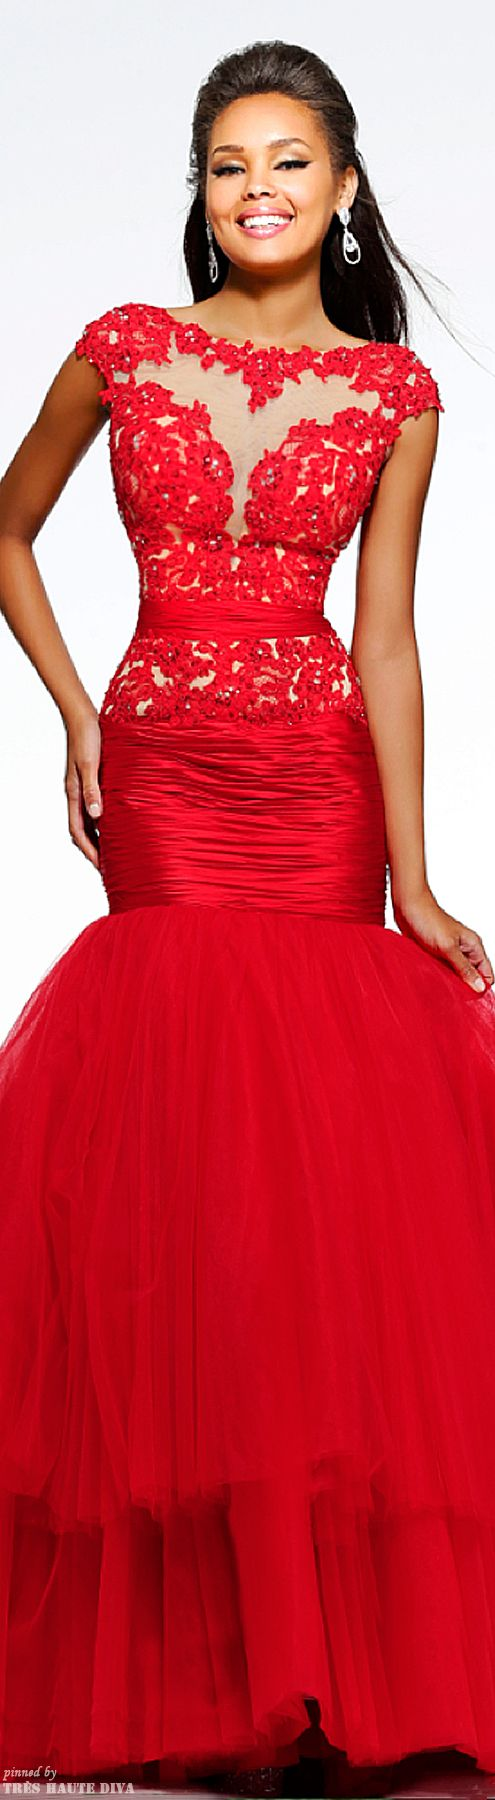 Sherri Hill 2014 Collection | @ The House of Beccaria#